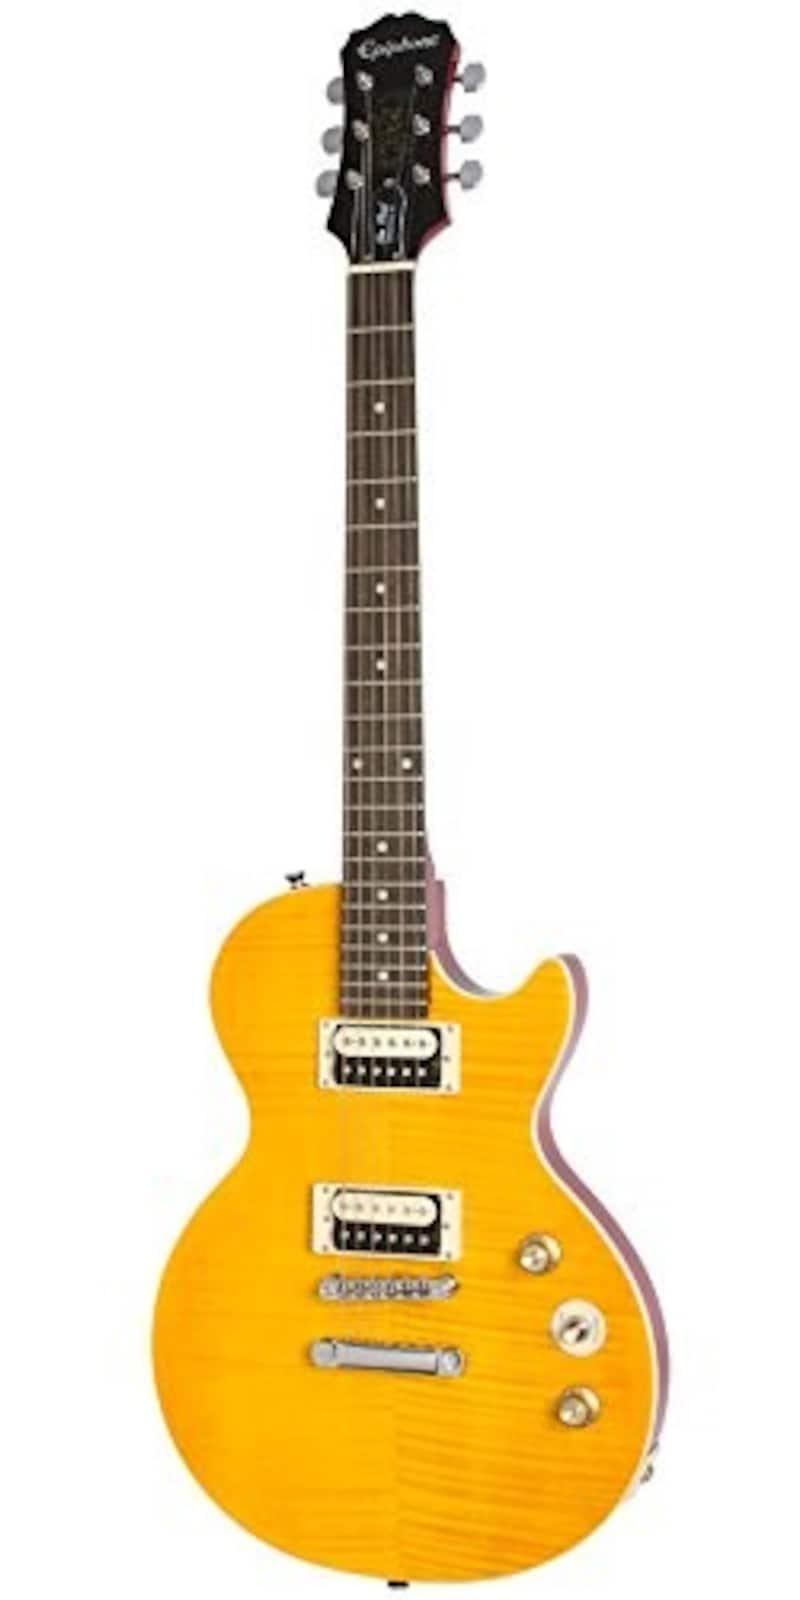 Slash AFD Les Paul Special-II Guitar Outfit Appetite Amber